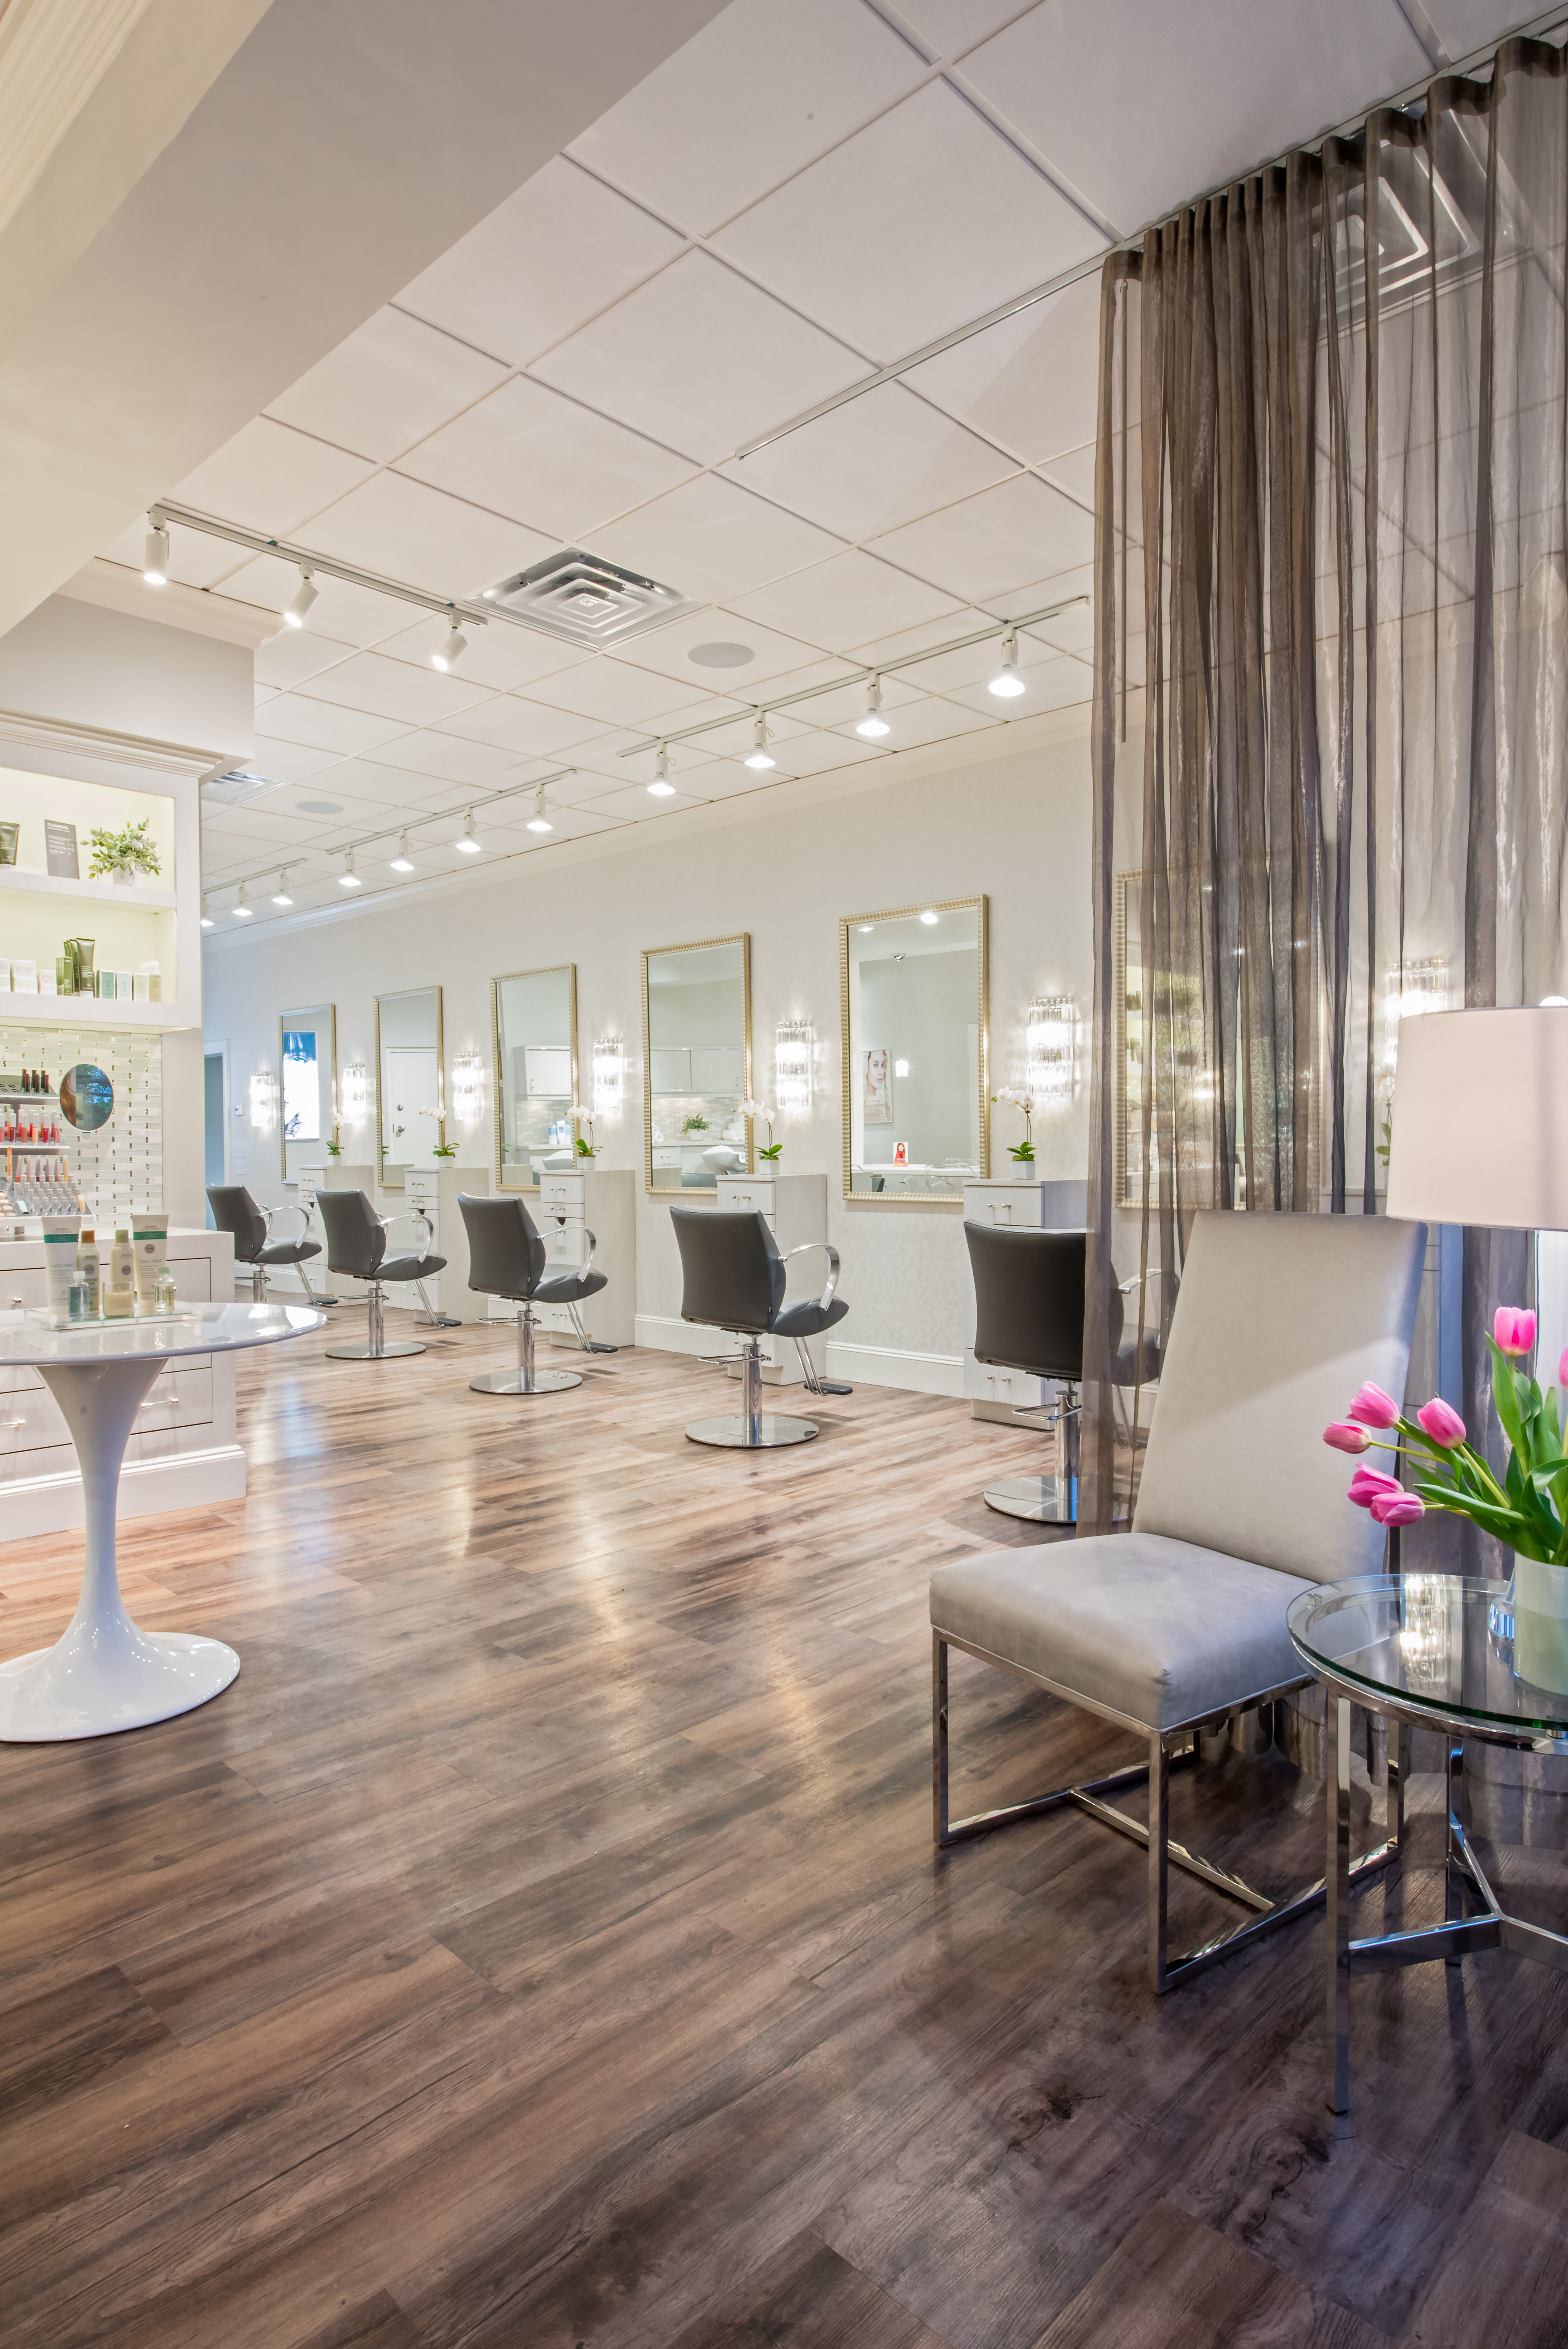 2019 Salons of the Year: Marchelle Salone